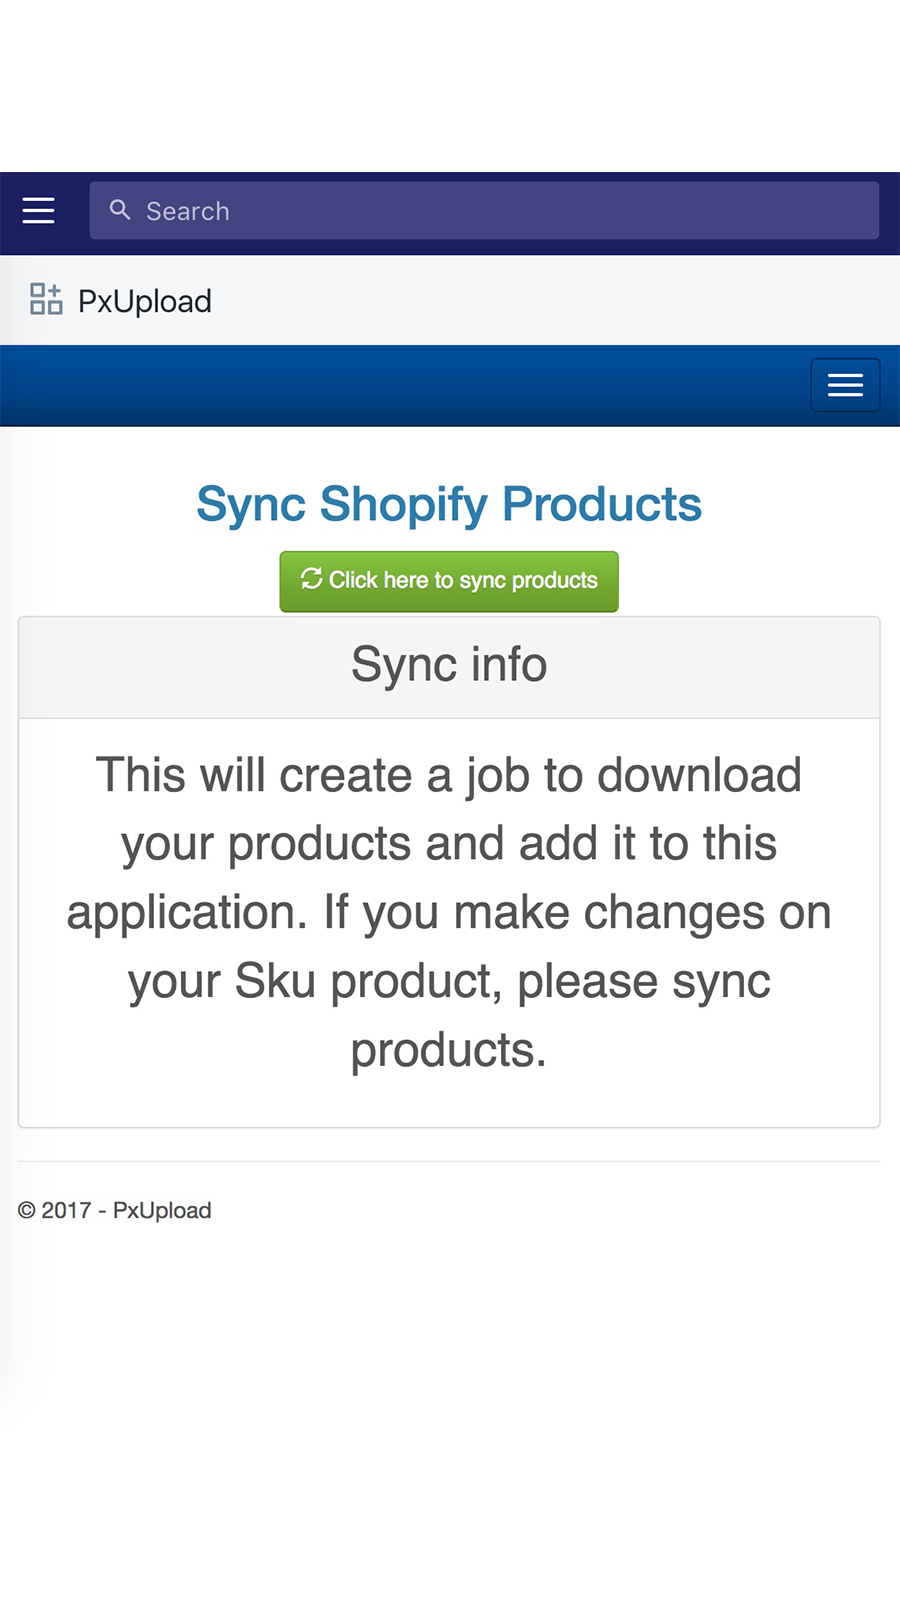 Sync products